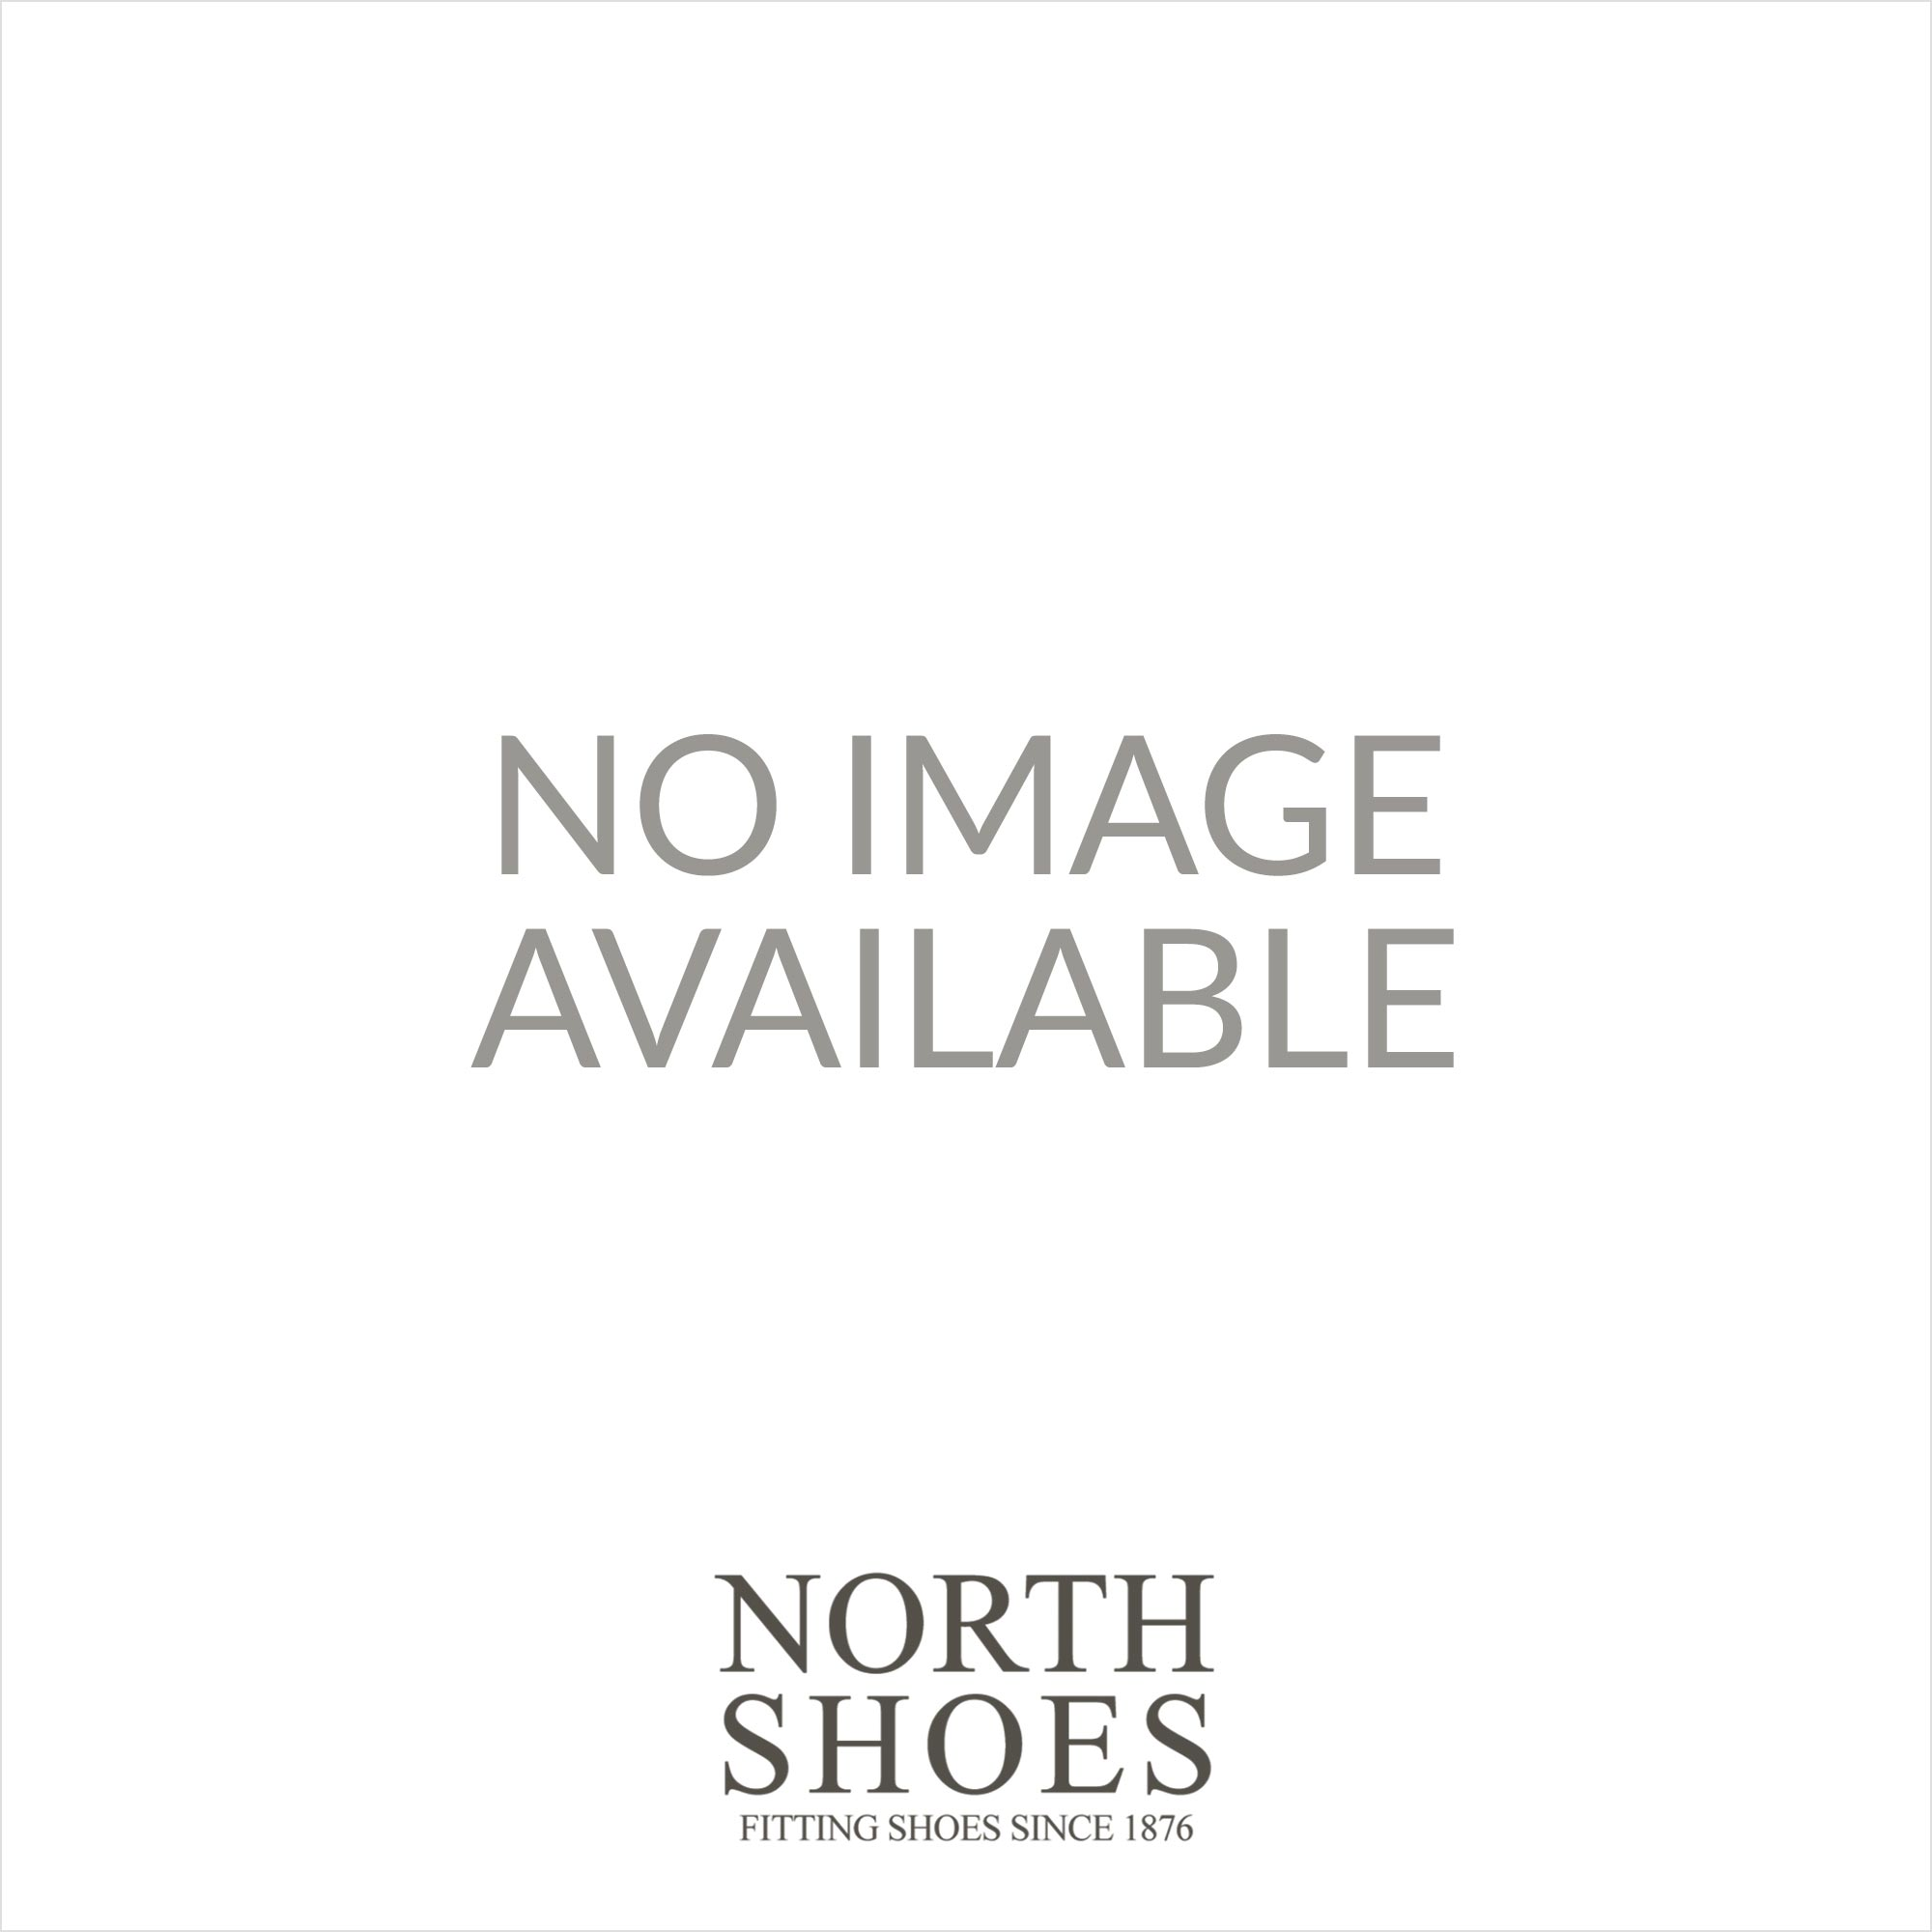 e8ff8bfe37e ... Clarks Piper Chat Infant Silver Leather Girls Light Up Trainer ...